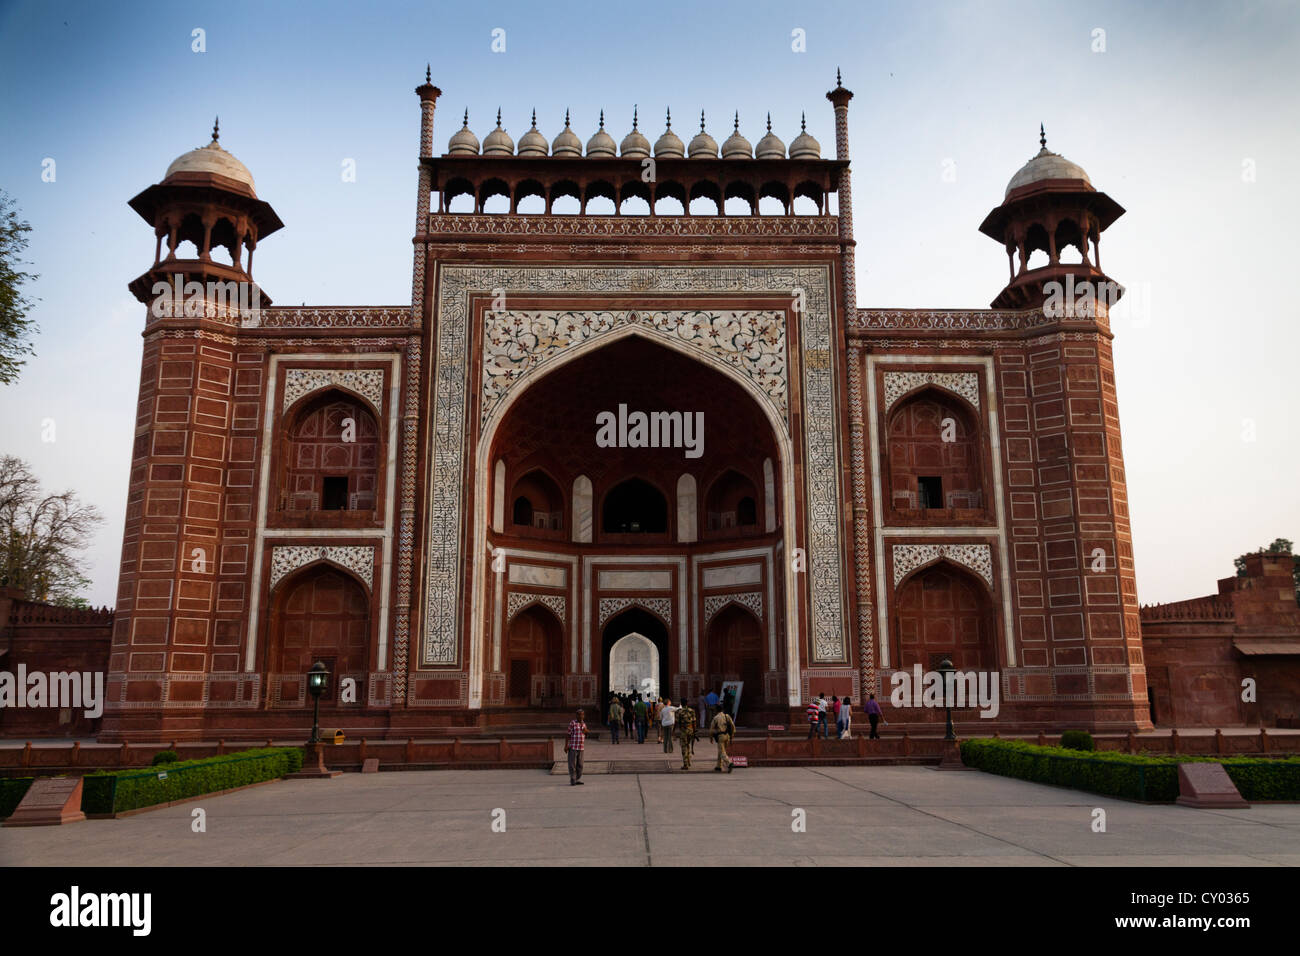 asia india taj mahal entry stock photos asia india taj mahal entry stock images alamy. Black Bedroom Furniture Sets. Home Design Ideas